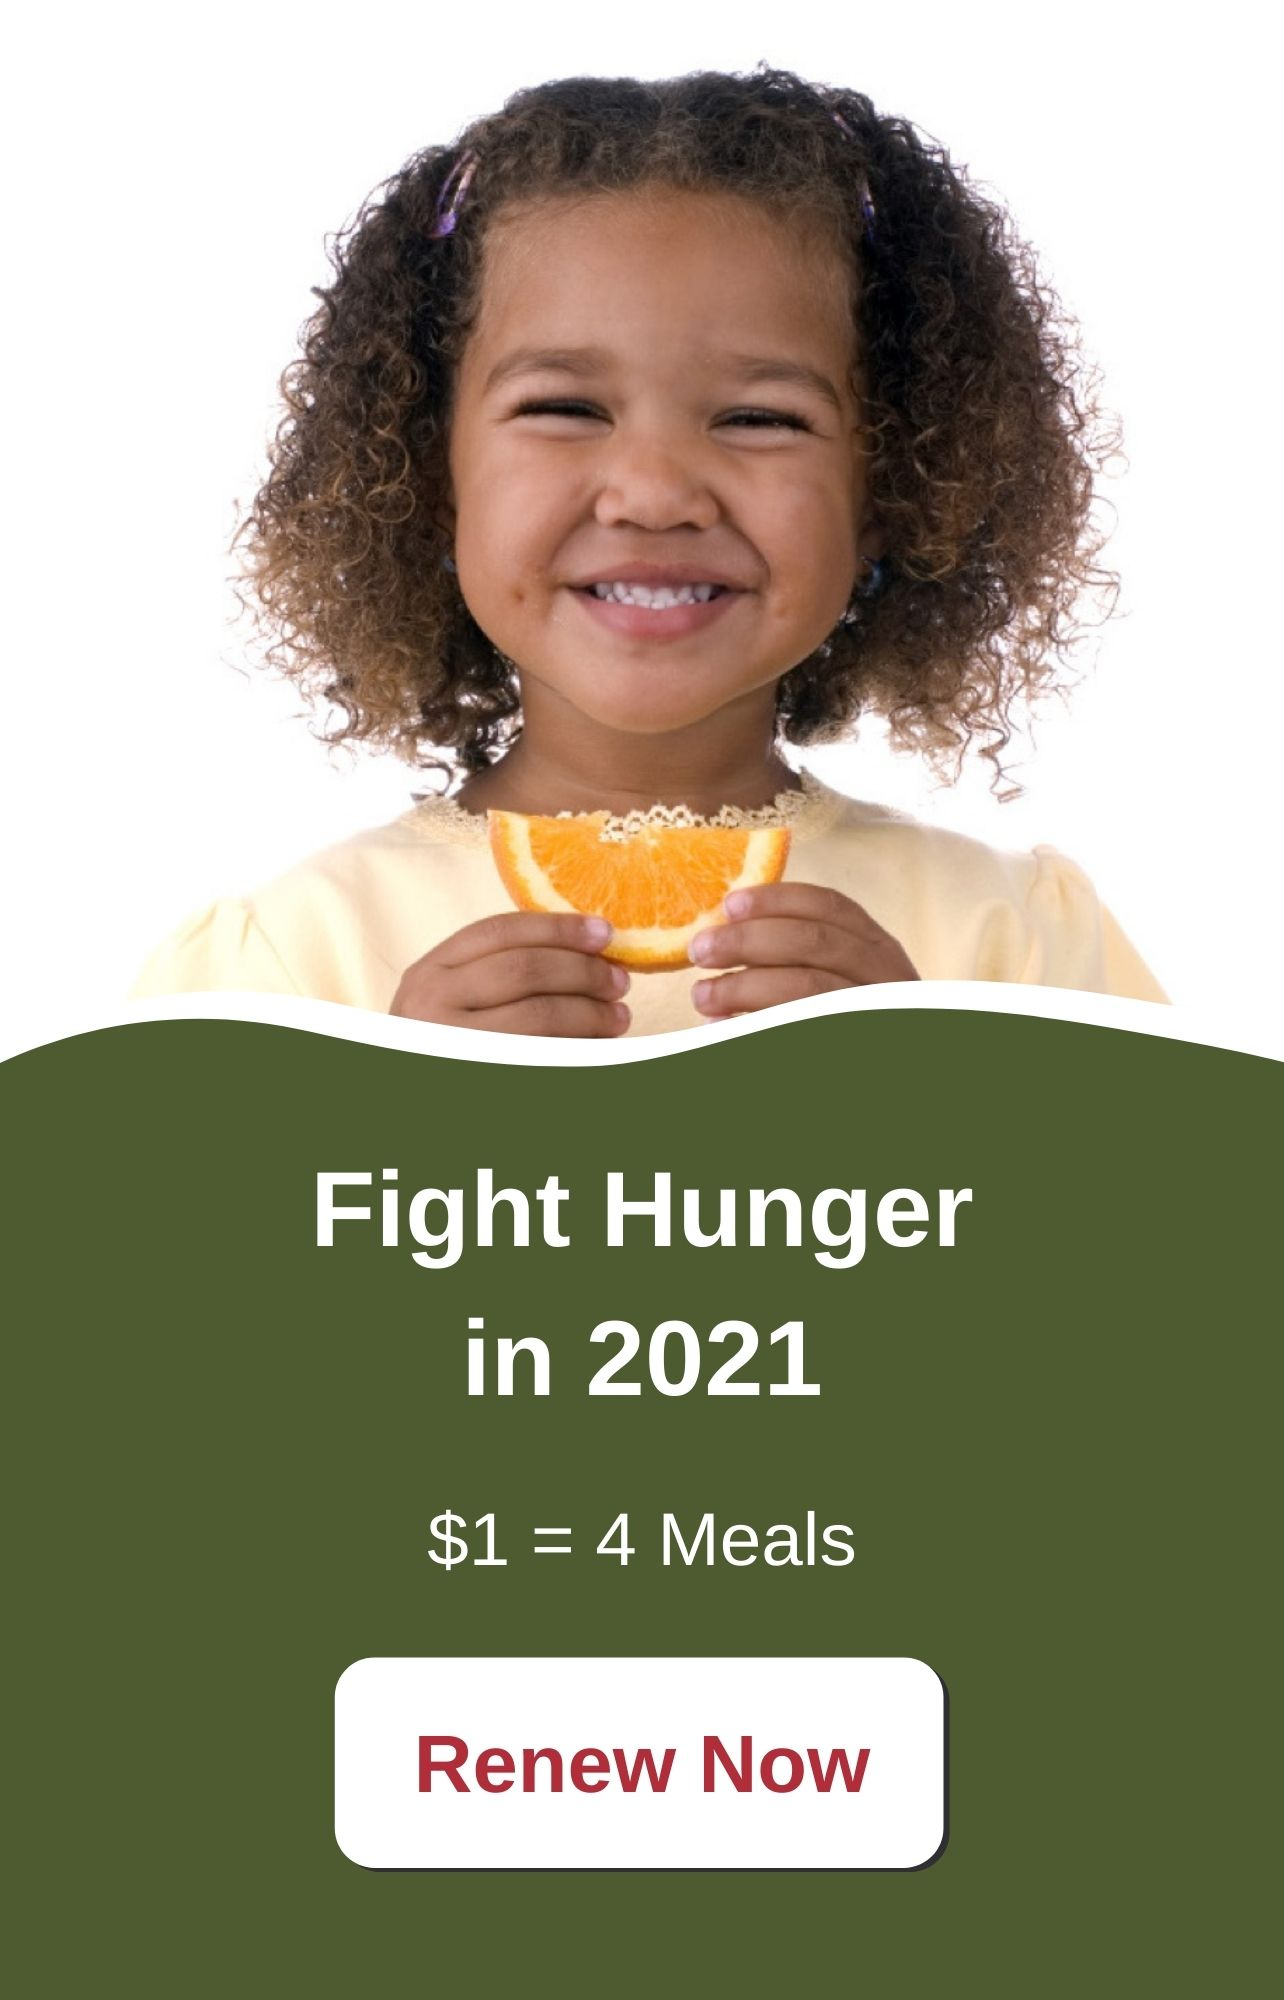 Fight Hunger in 2021